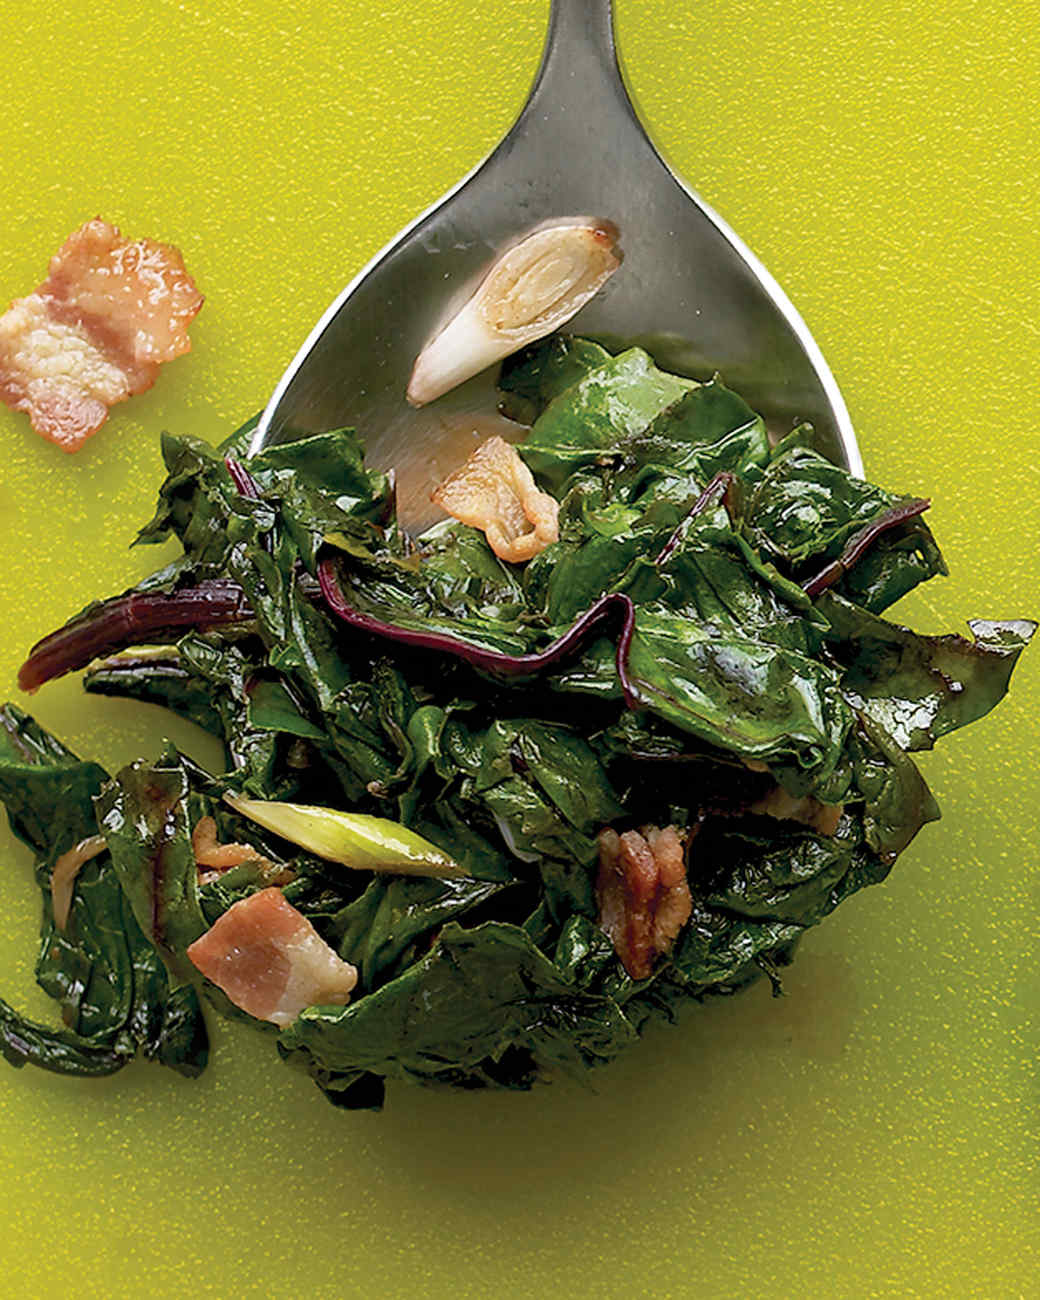 med105199_0110_sea_beet_greens.jpg